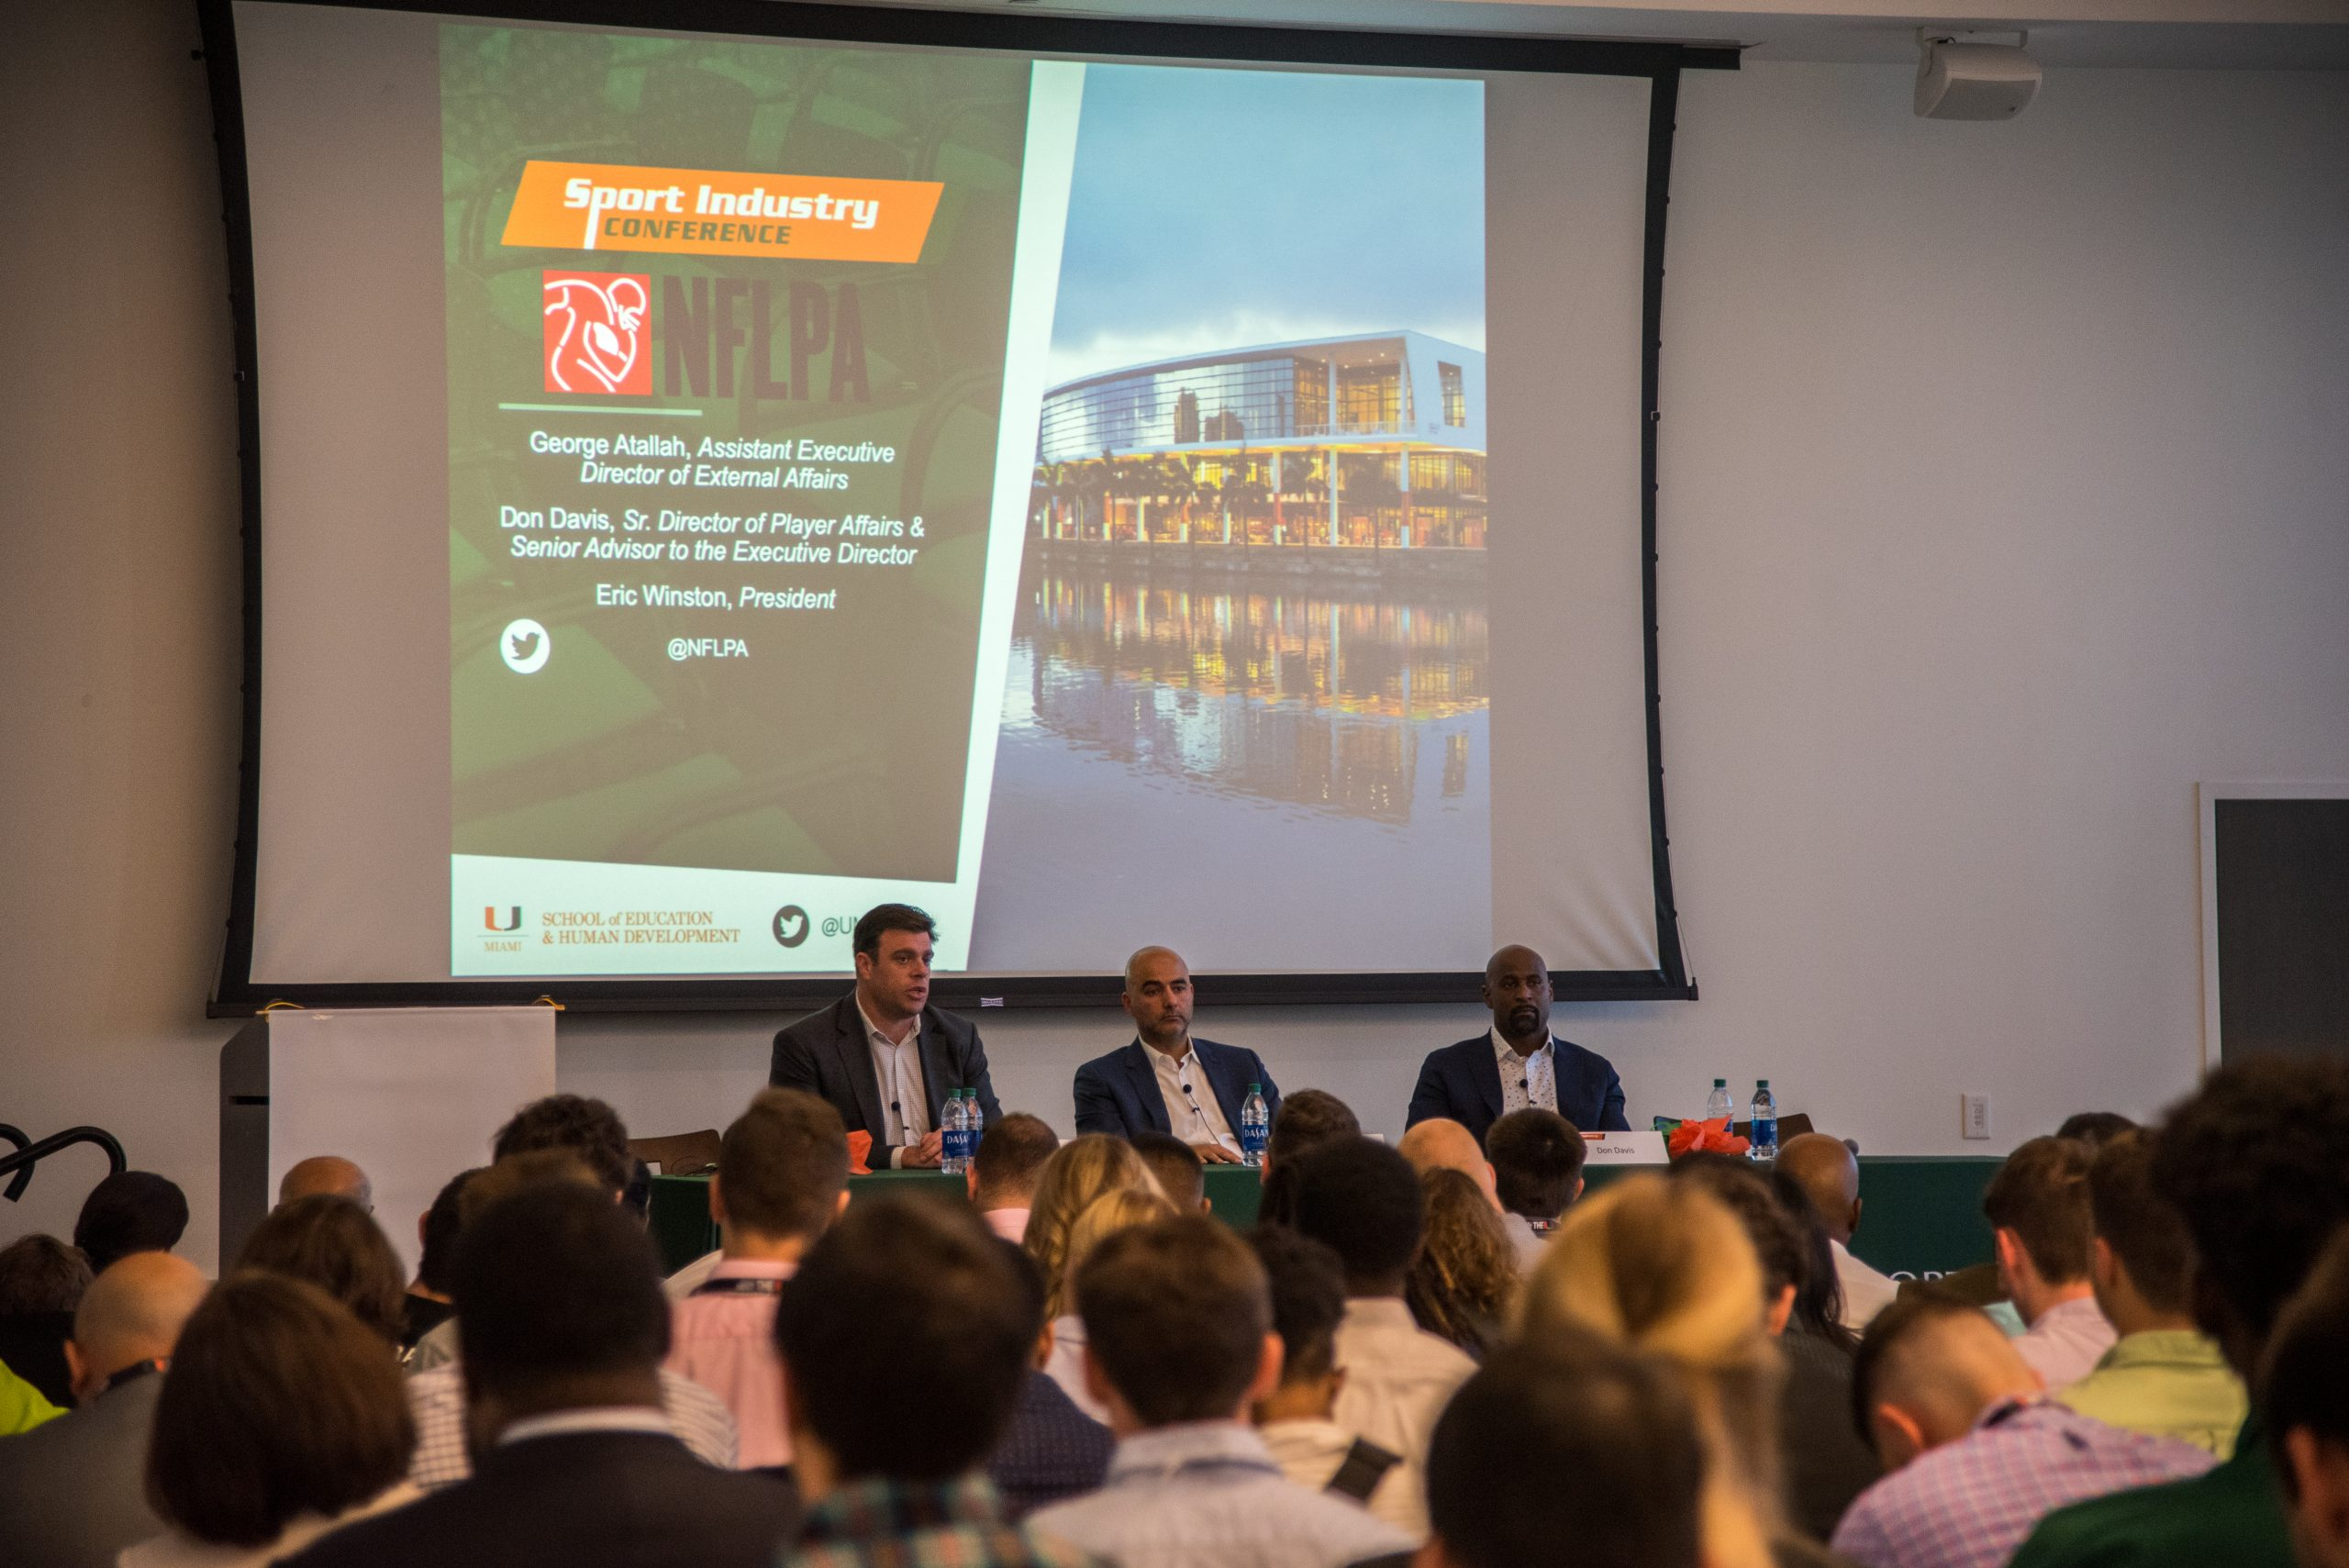 Sport Industry Conference Draws 400+ Attendees